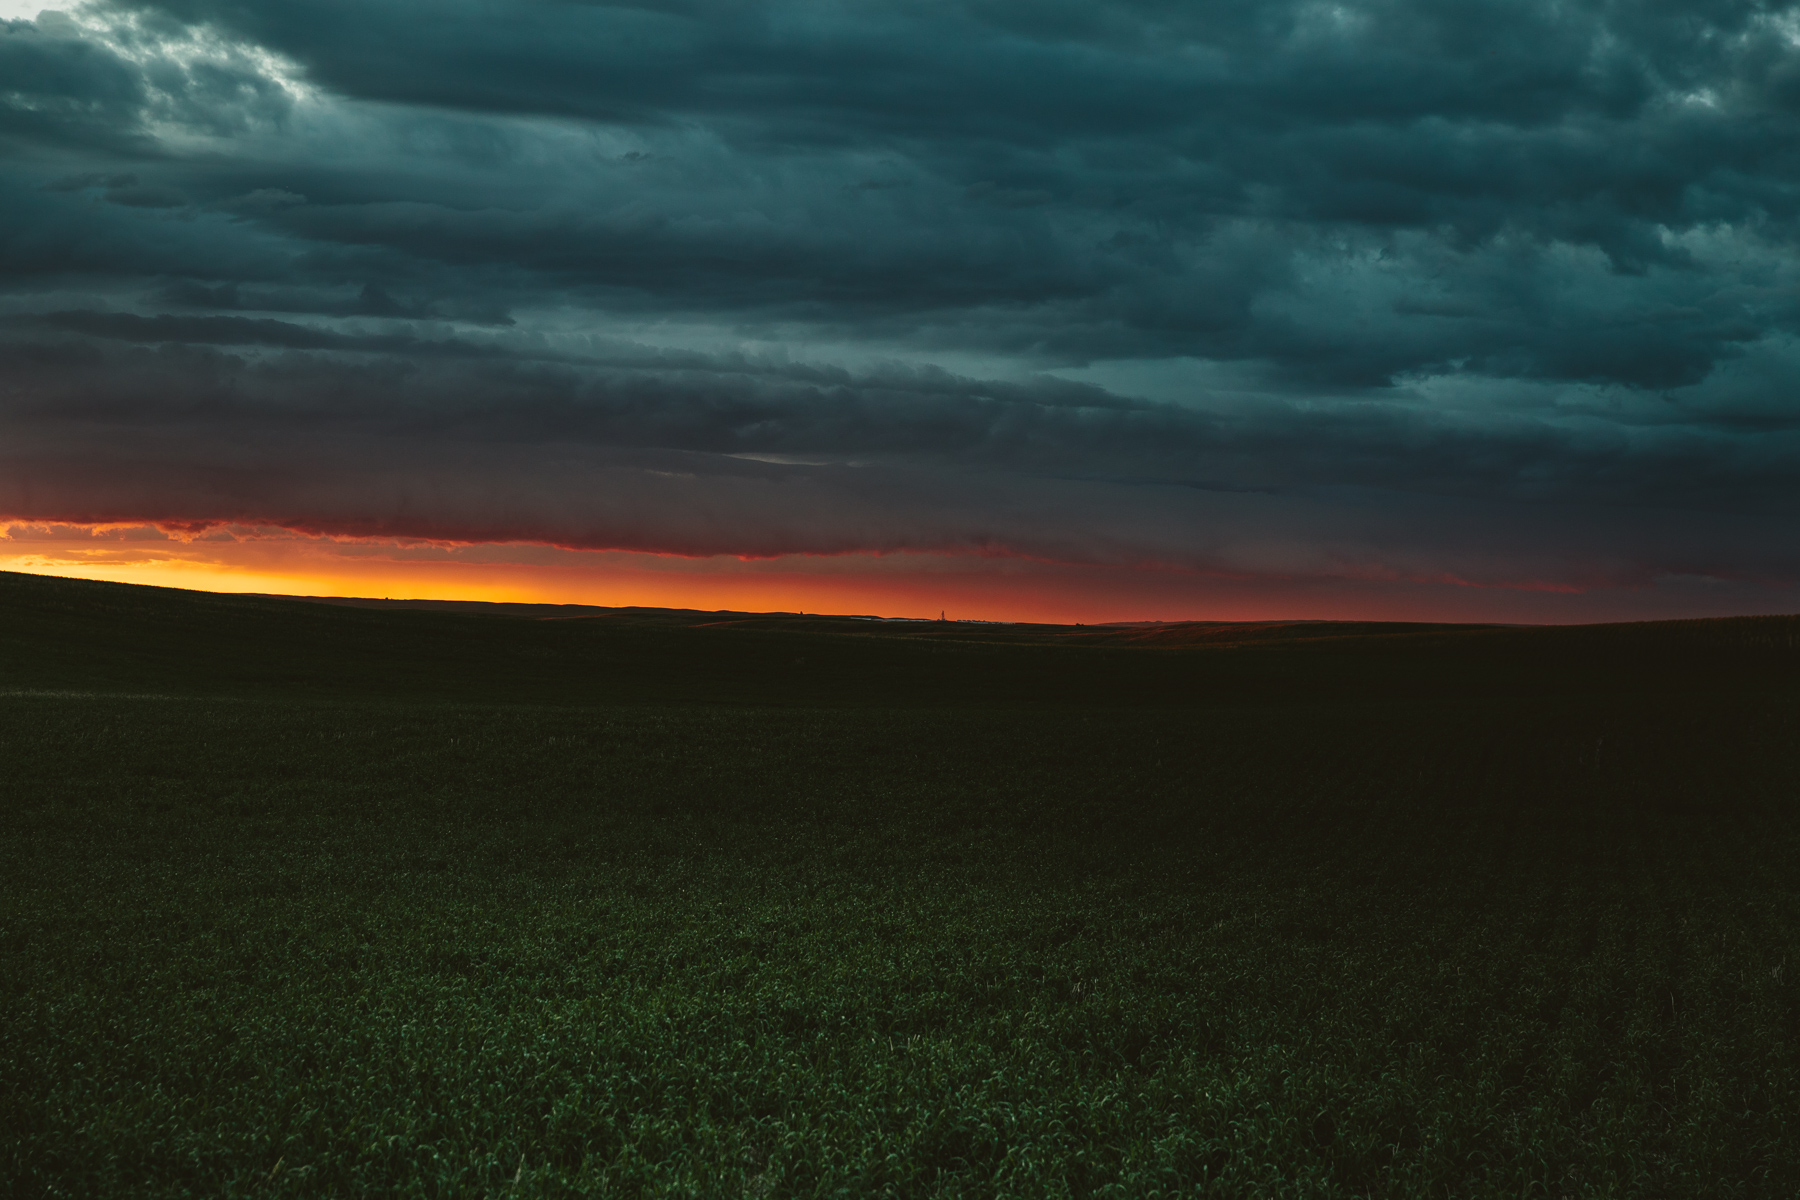 alberta-landscape-lifestyle-photography-mikeseehagel-13